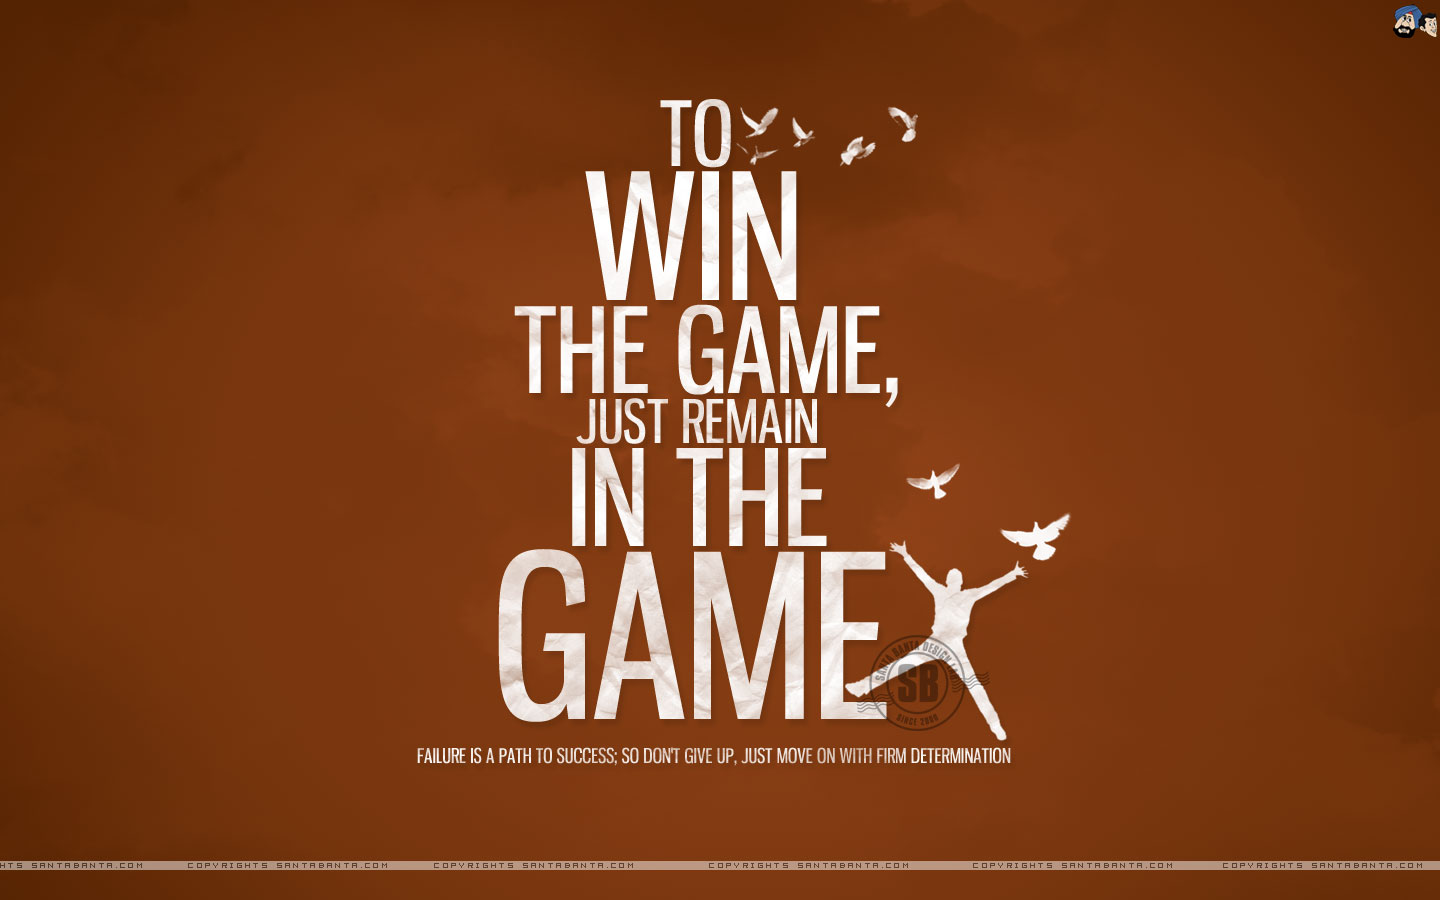 Motivational Wallpaper On Winning To Win The Game